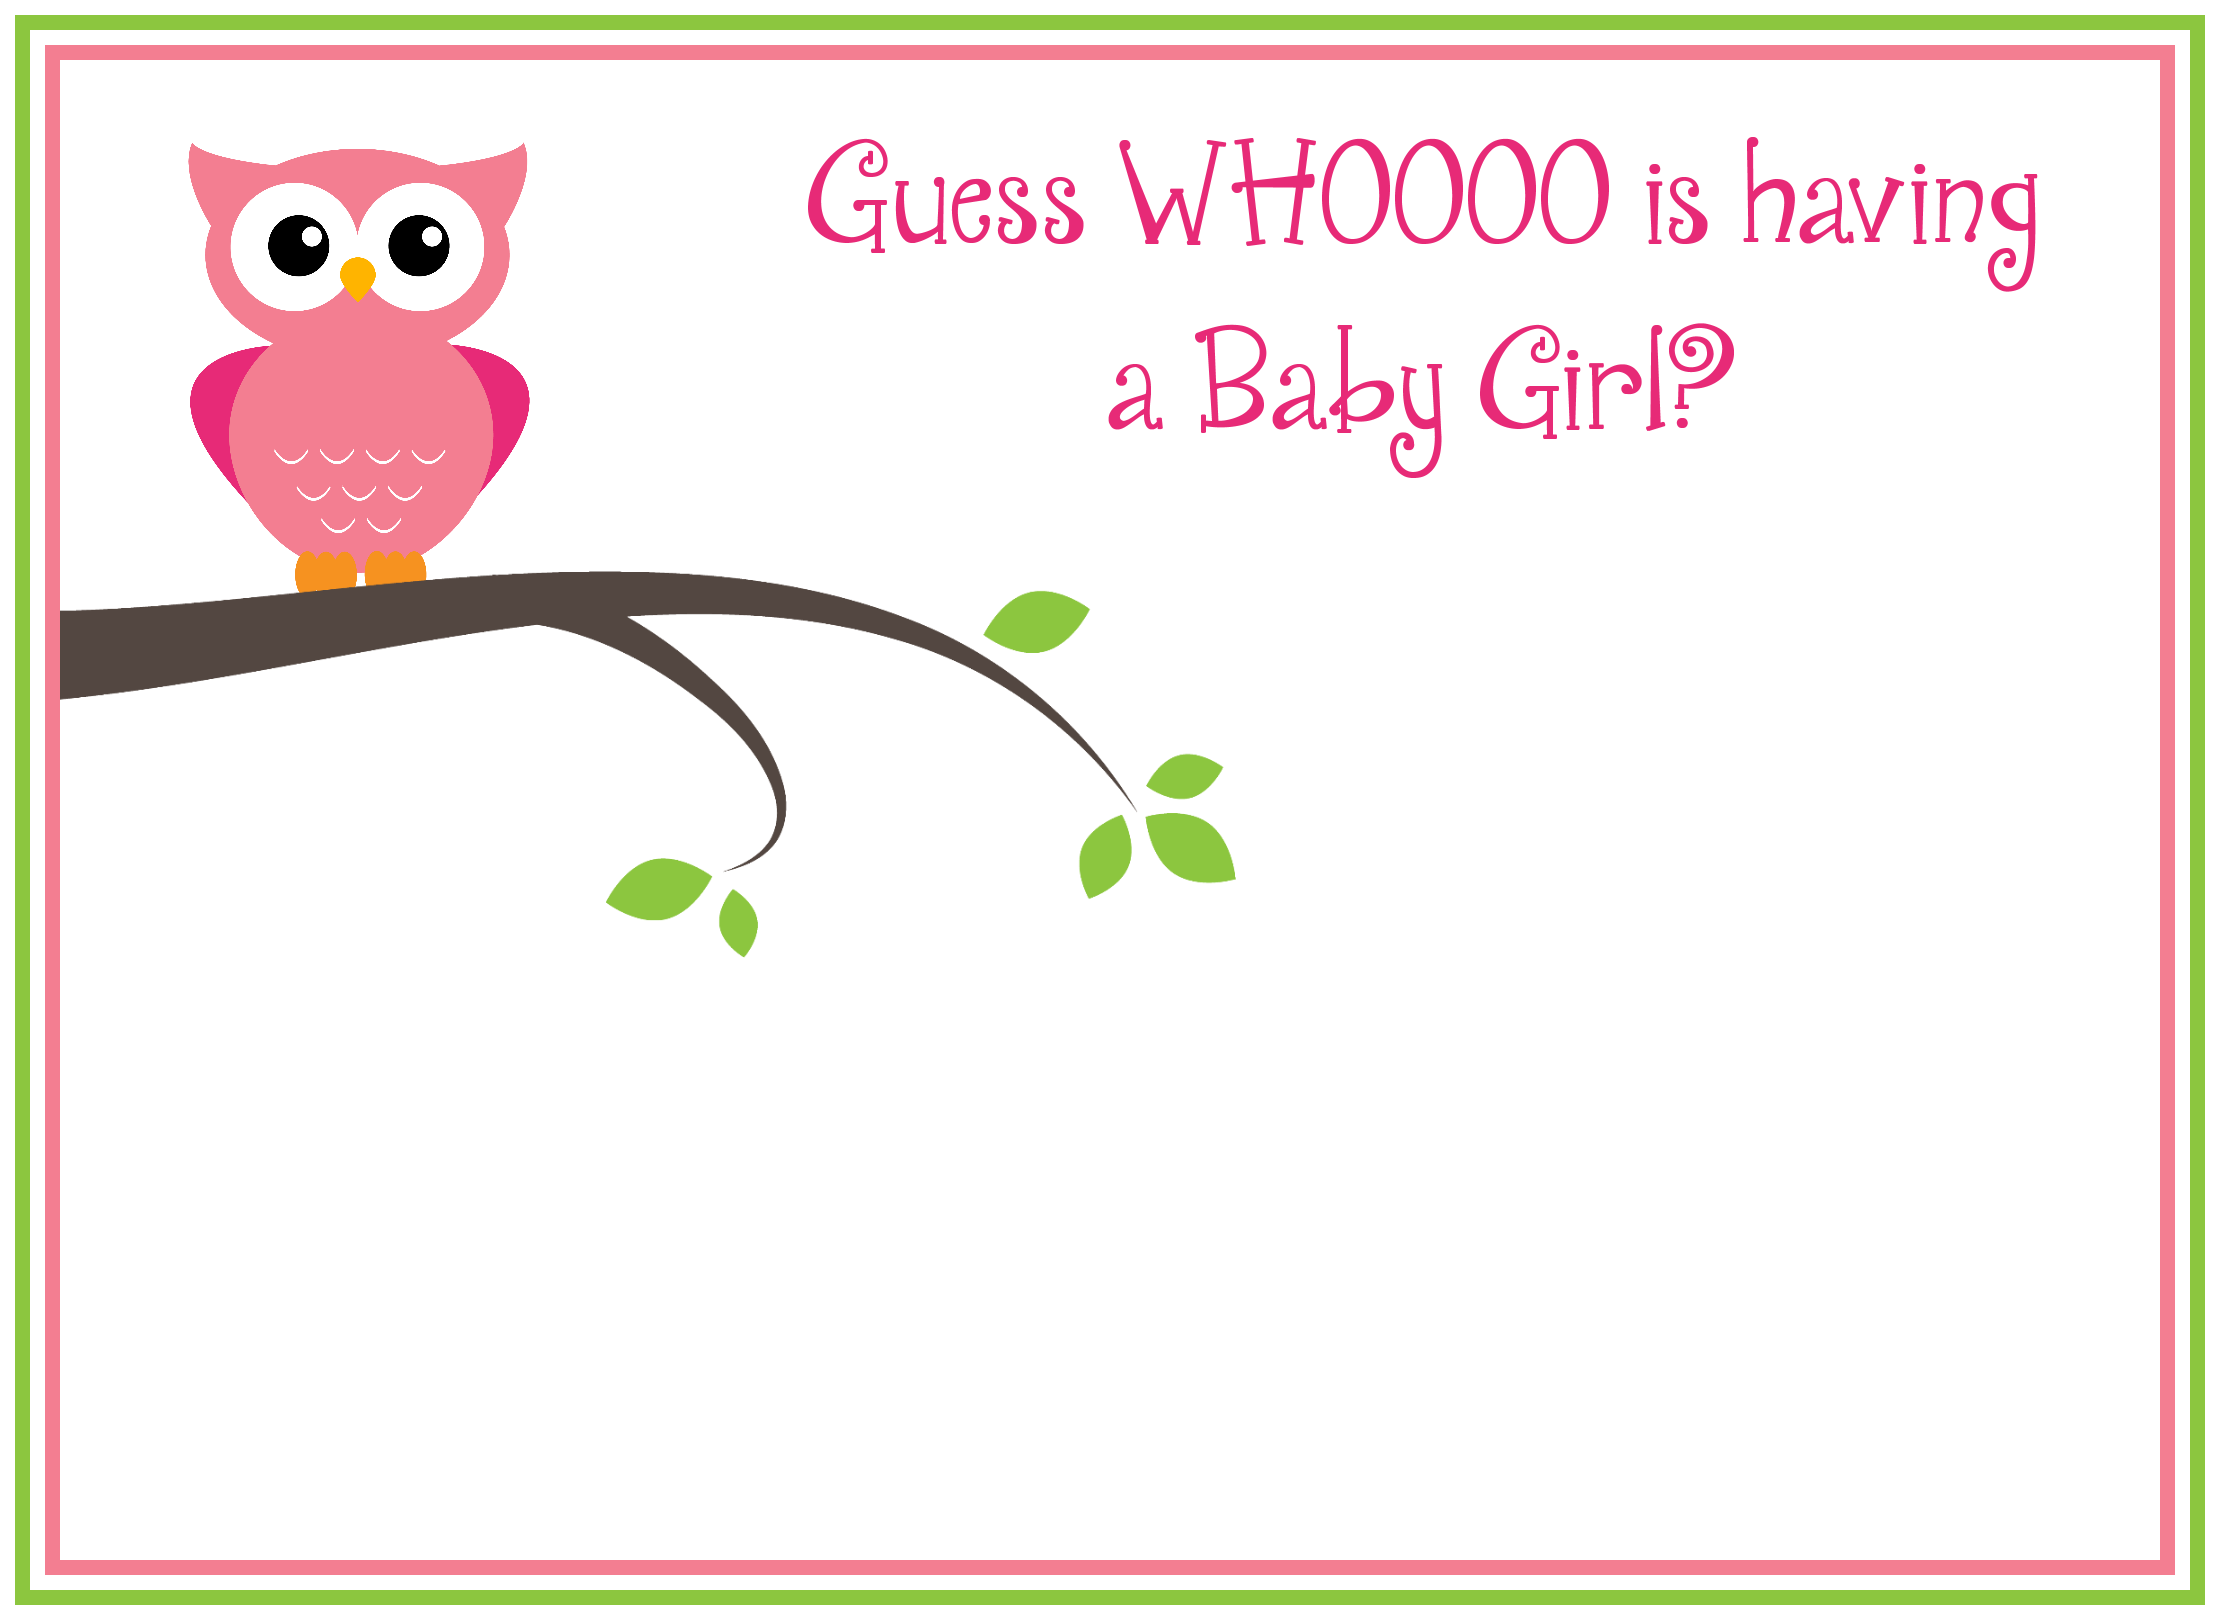 Girl Owl Baby Shower Invitation Templates 2220 x 1620